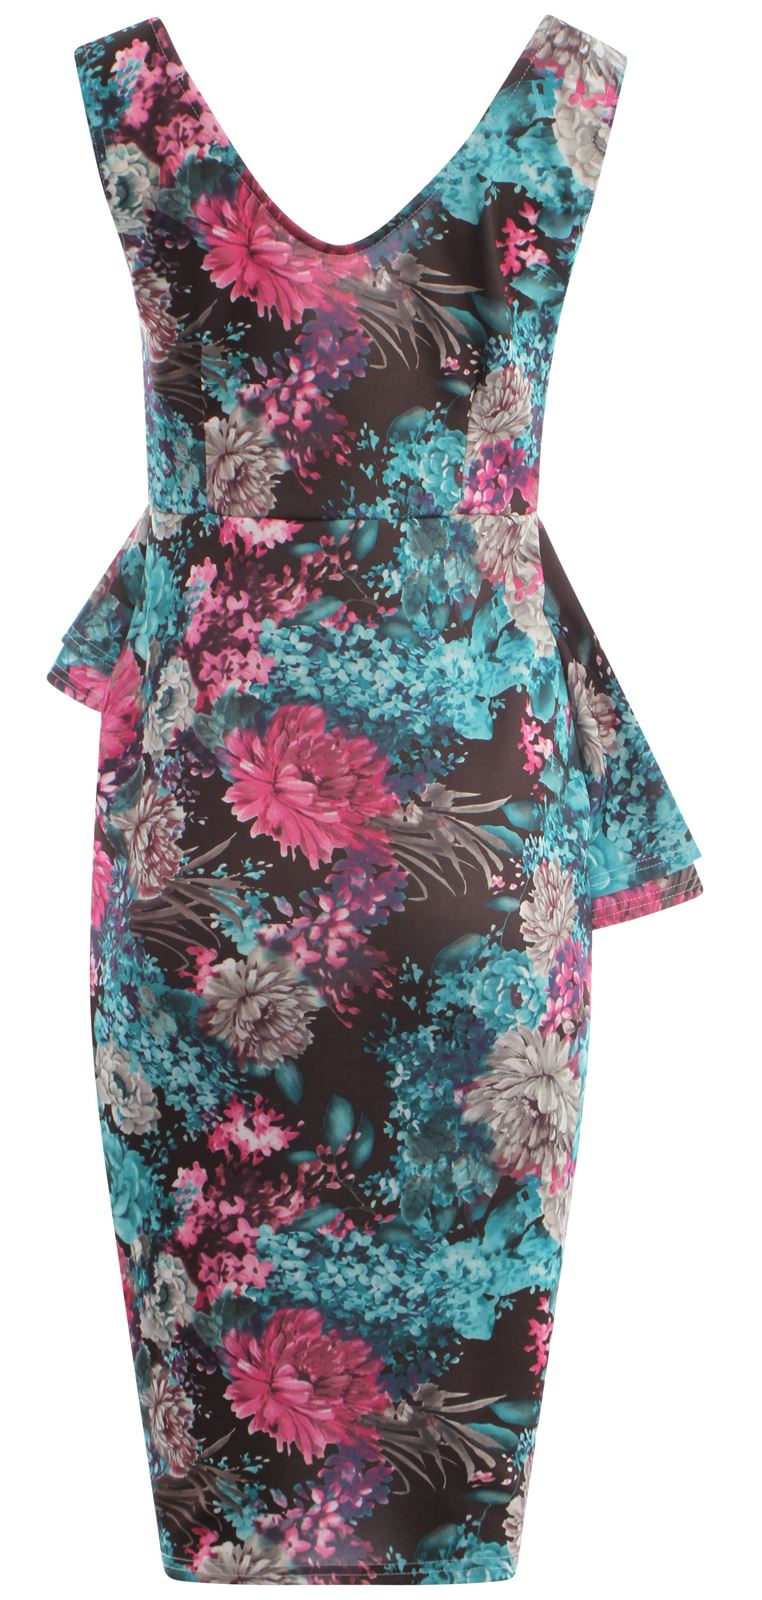 thumbnail 7 - Womens Tropical Lilly Floral Print Double Peplum Bodycon Midi Skirt Dress 8-22